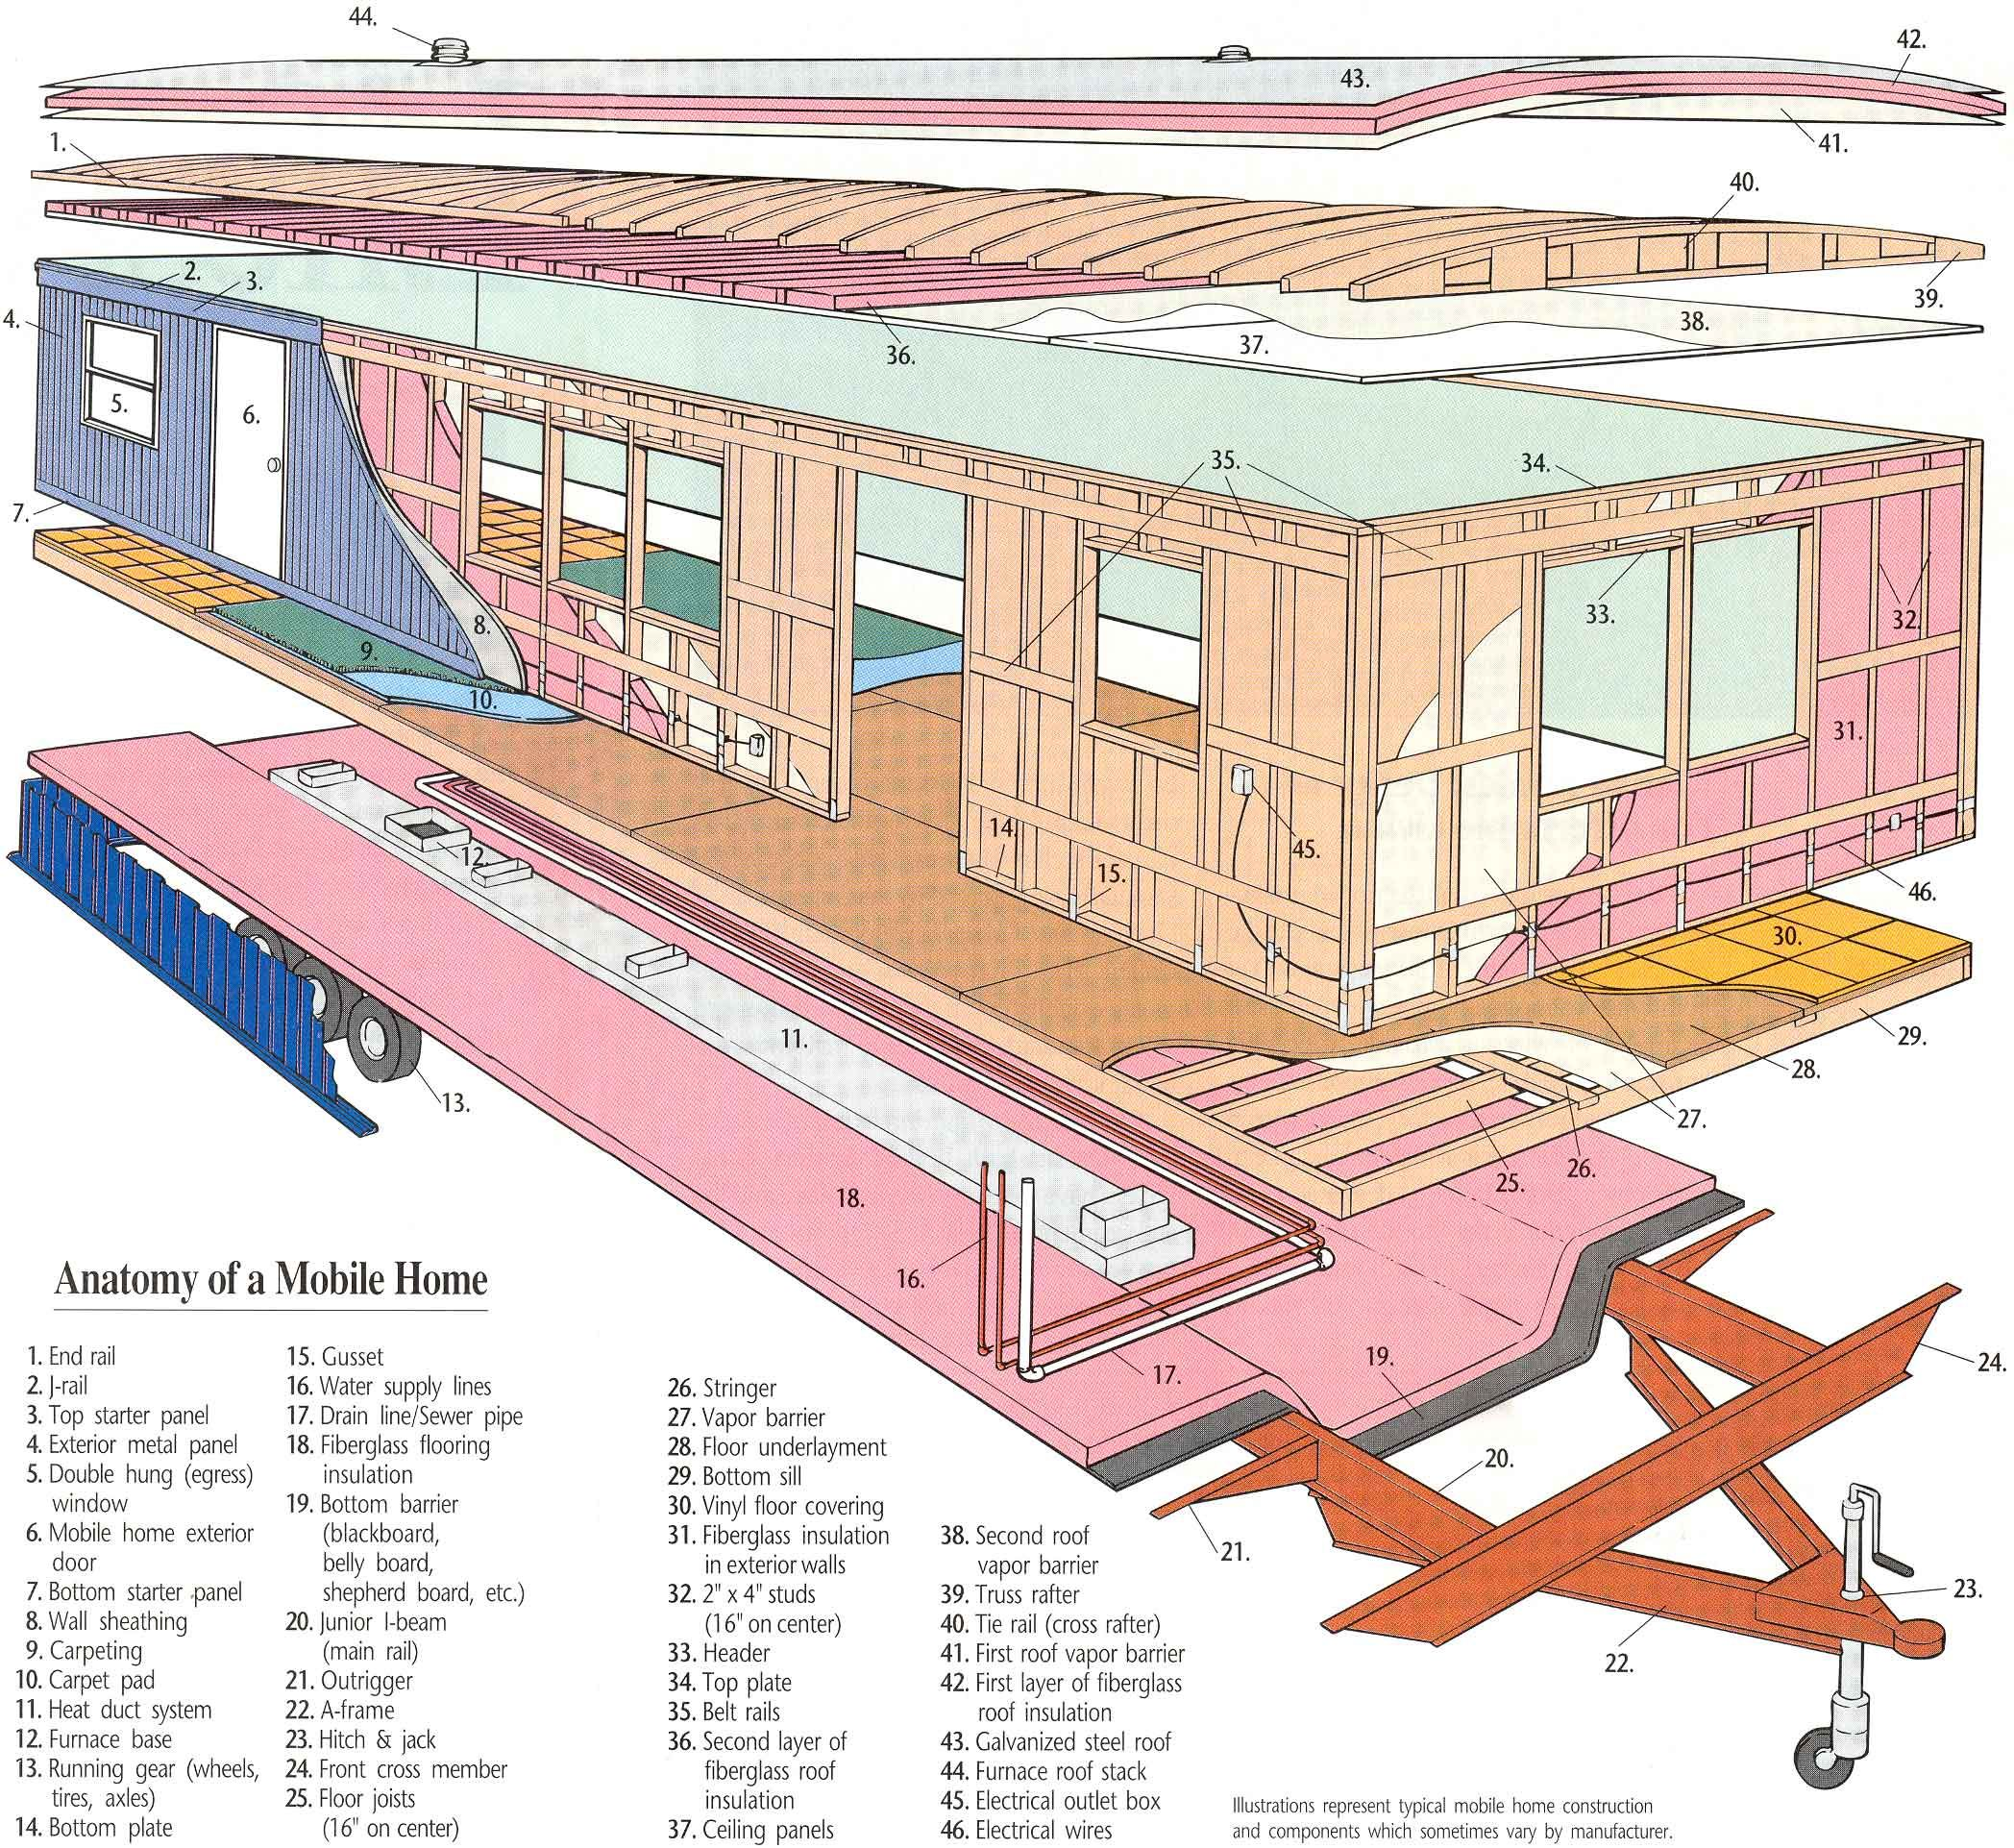 Image Detail for - Mobile Home Remodeling on a Shoestring... | Old ...